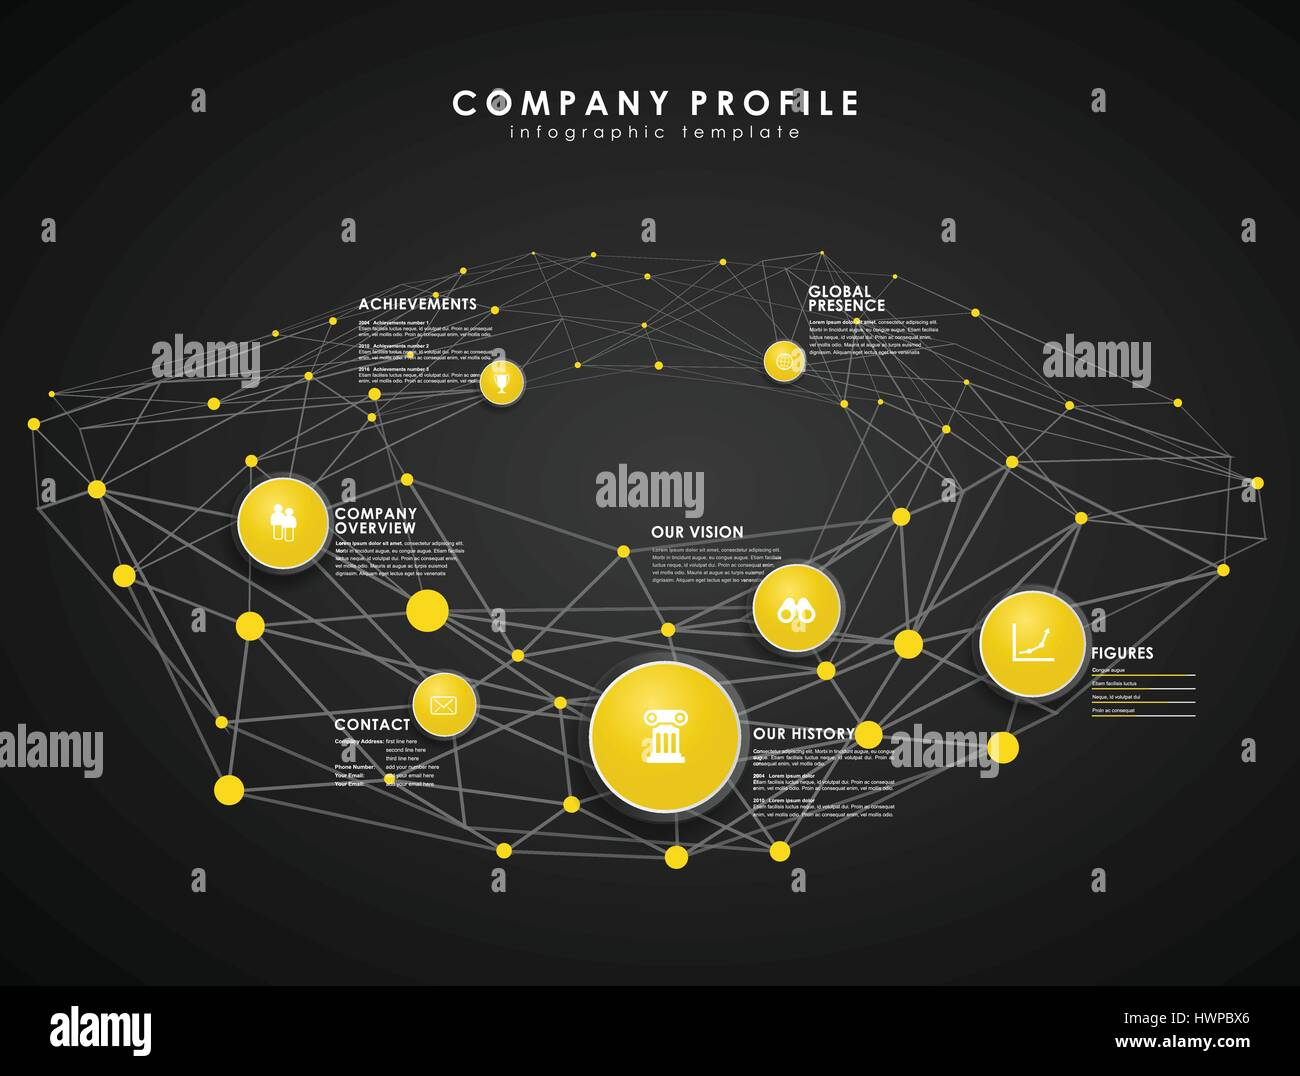 Company profile overview template with yellow circles and dots ...